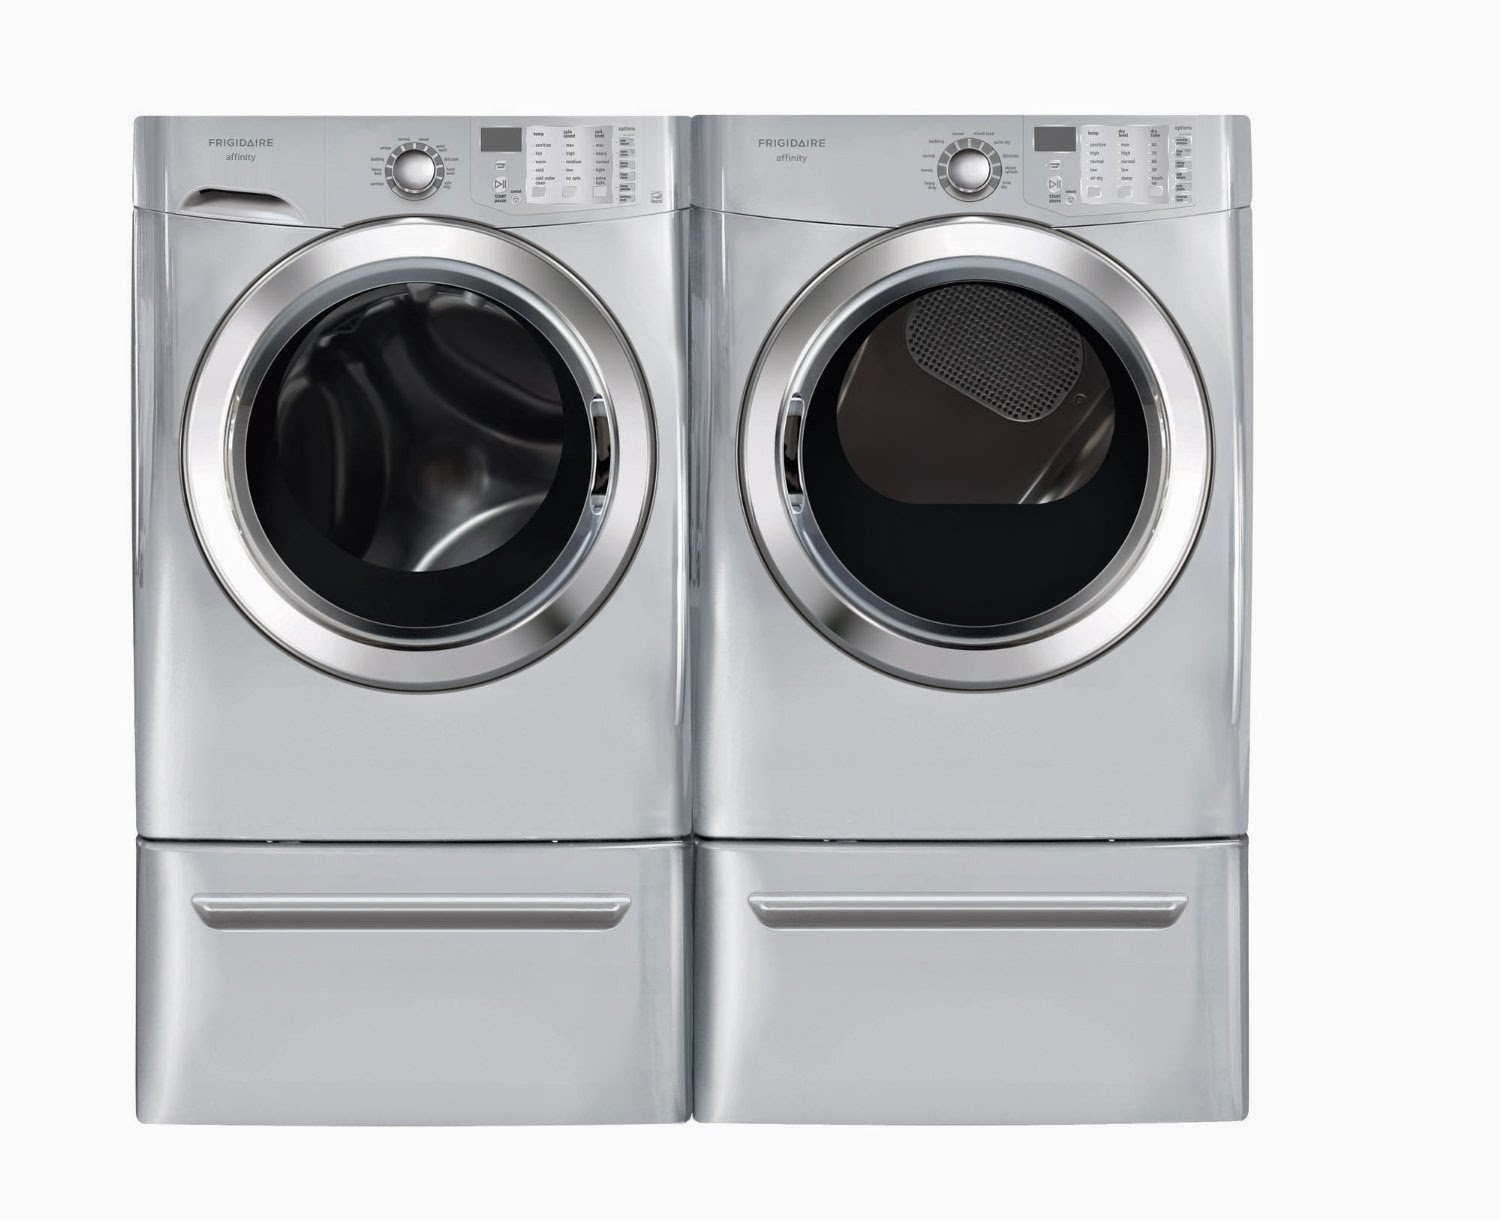 Silver 3 8 Cf Front Load Steam Washer And 7 0 Electric Dryer Laundry Set